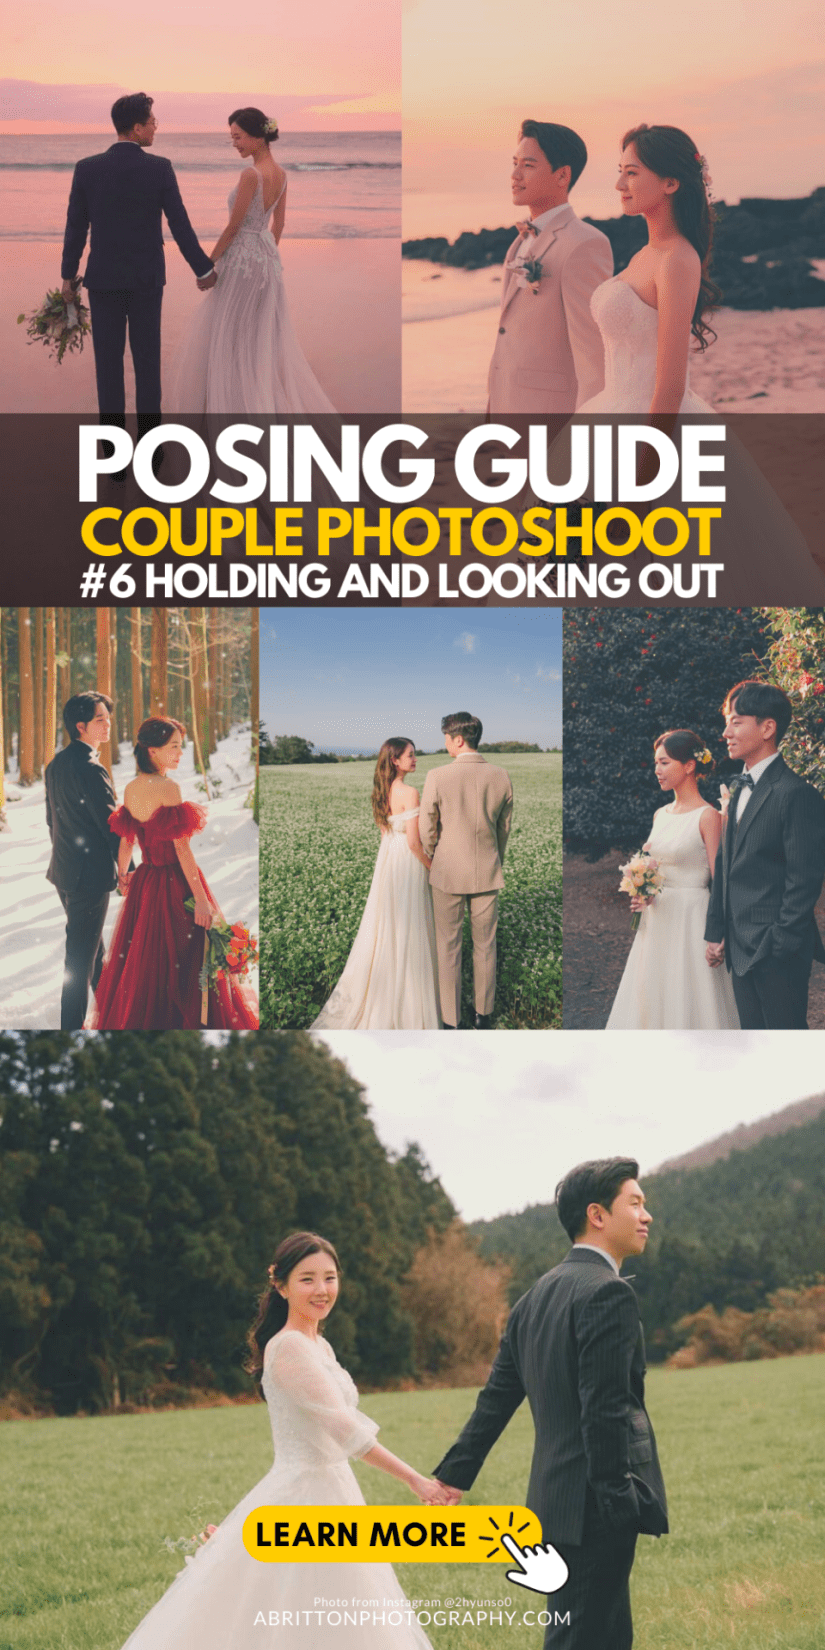 Dating Pictures Couple Photography Ideas and Poses